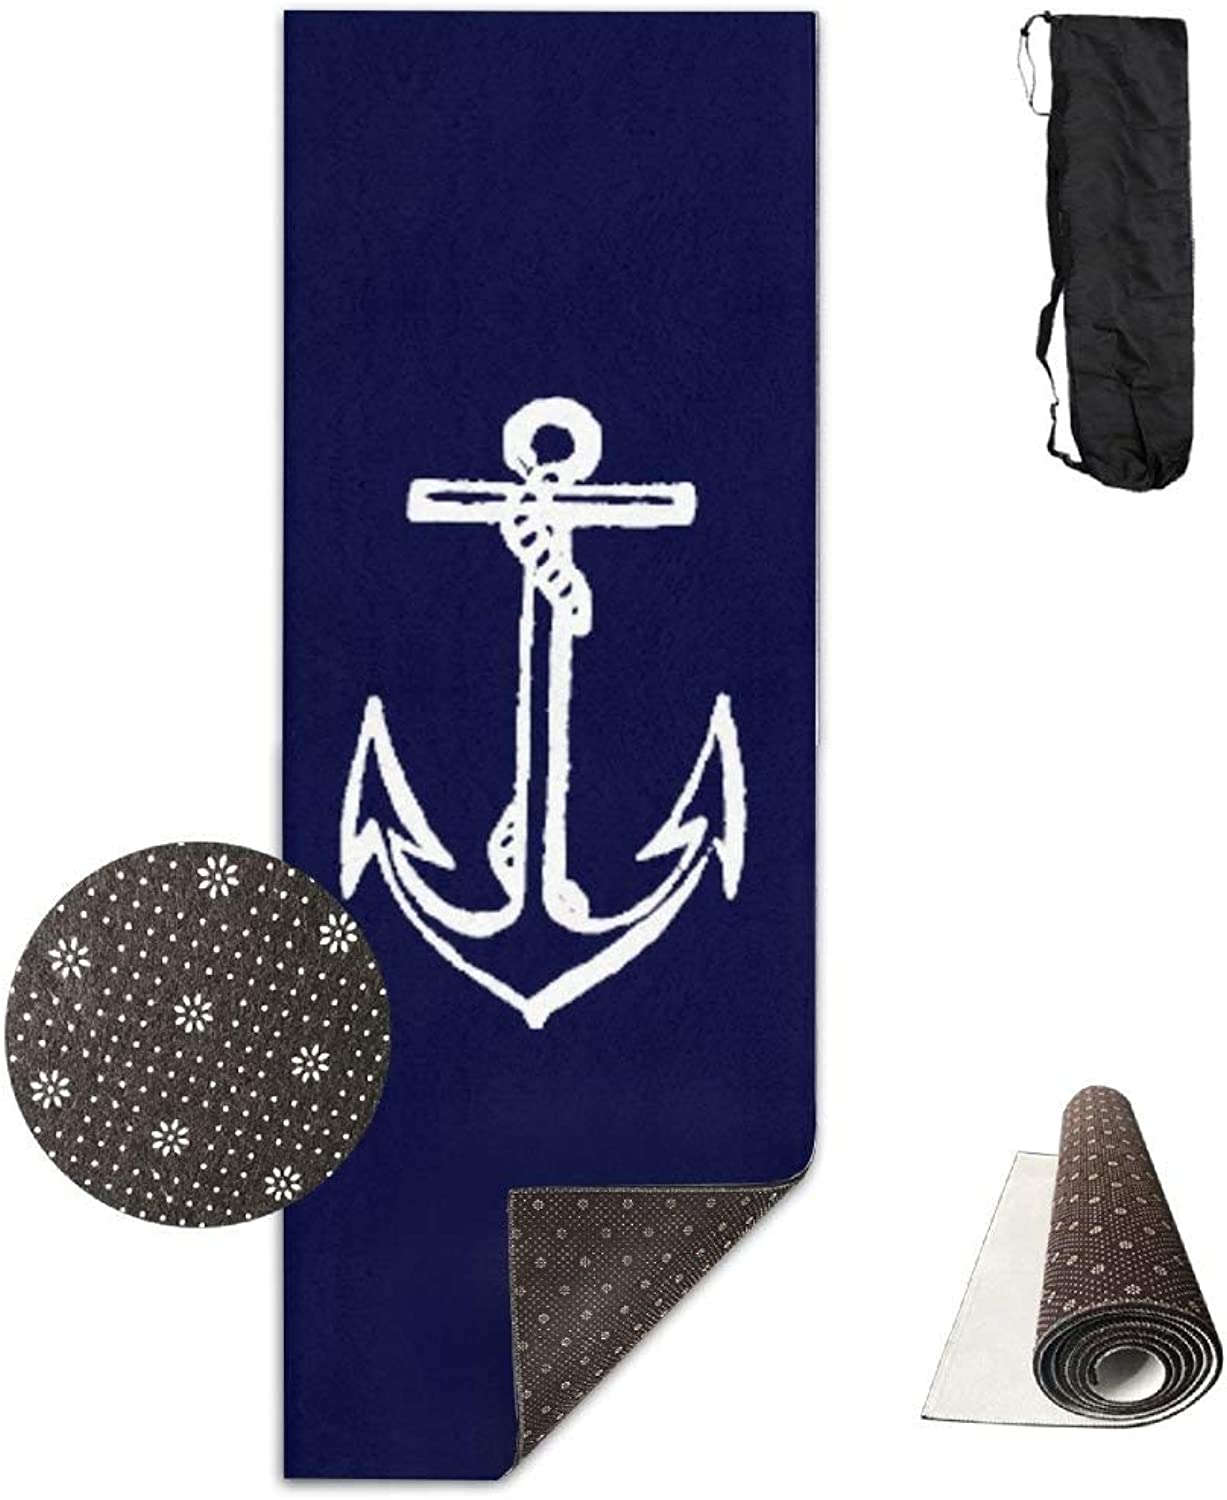 Nautical Navy blueee Anchor of Pirate Yoga Mat  Advanced Yoga Mat  NonSlip Lining  Easy to Clean  LatexFree  Lightweight and Durable  Long 180 Width 61cm